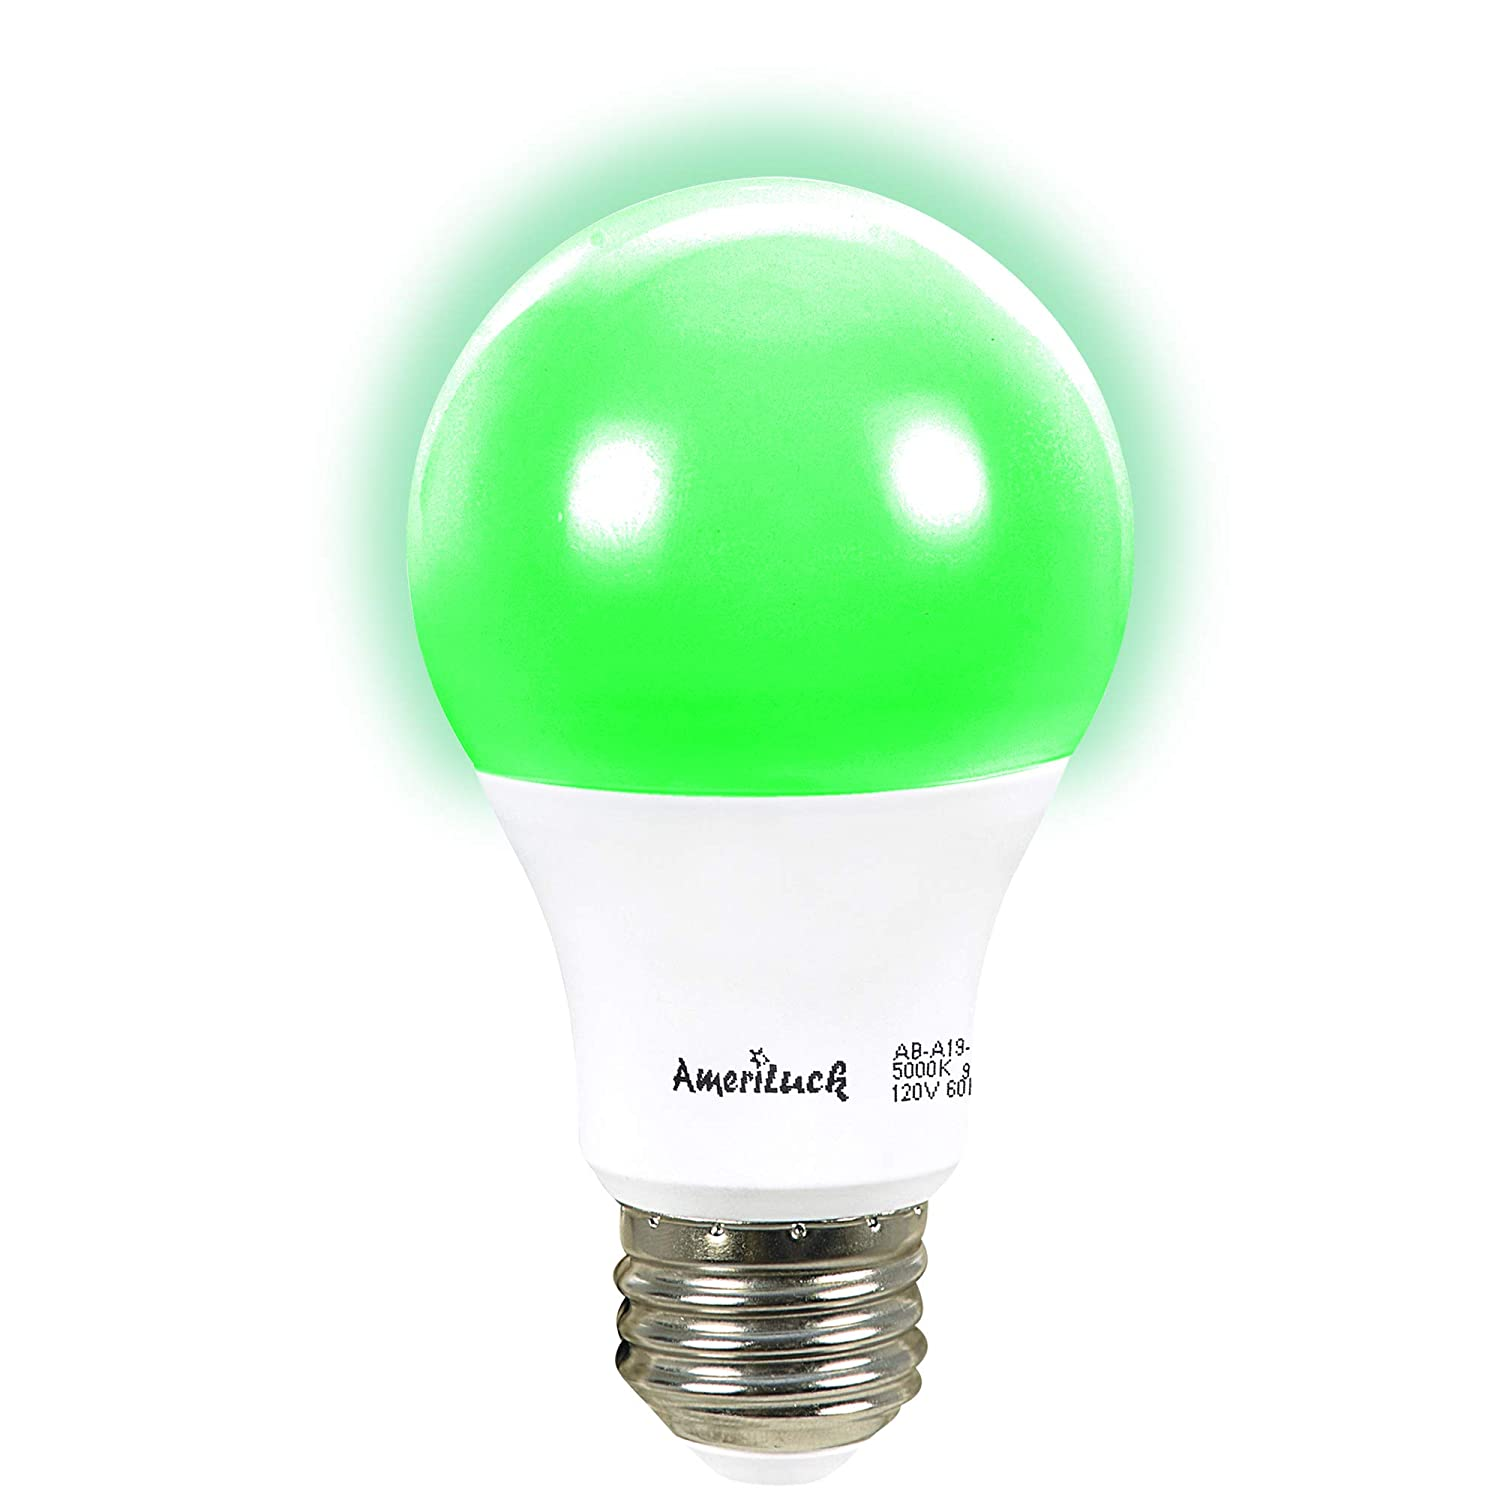 AmeriLuck Green Colored A19 LED Light Bulb, 60W Equivalent (7W), E26 Medium Scew Base, 2-Year Warranty (4 Pack) - - Amazon.com